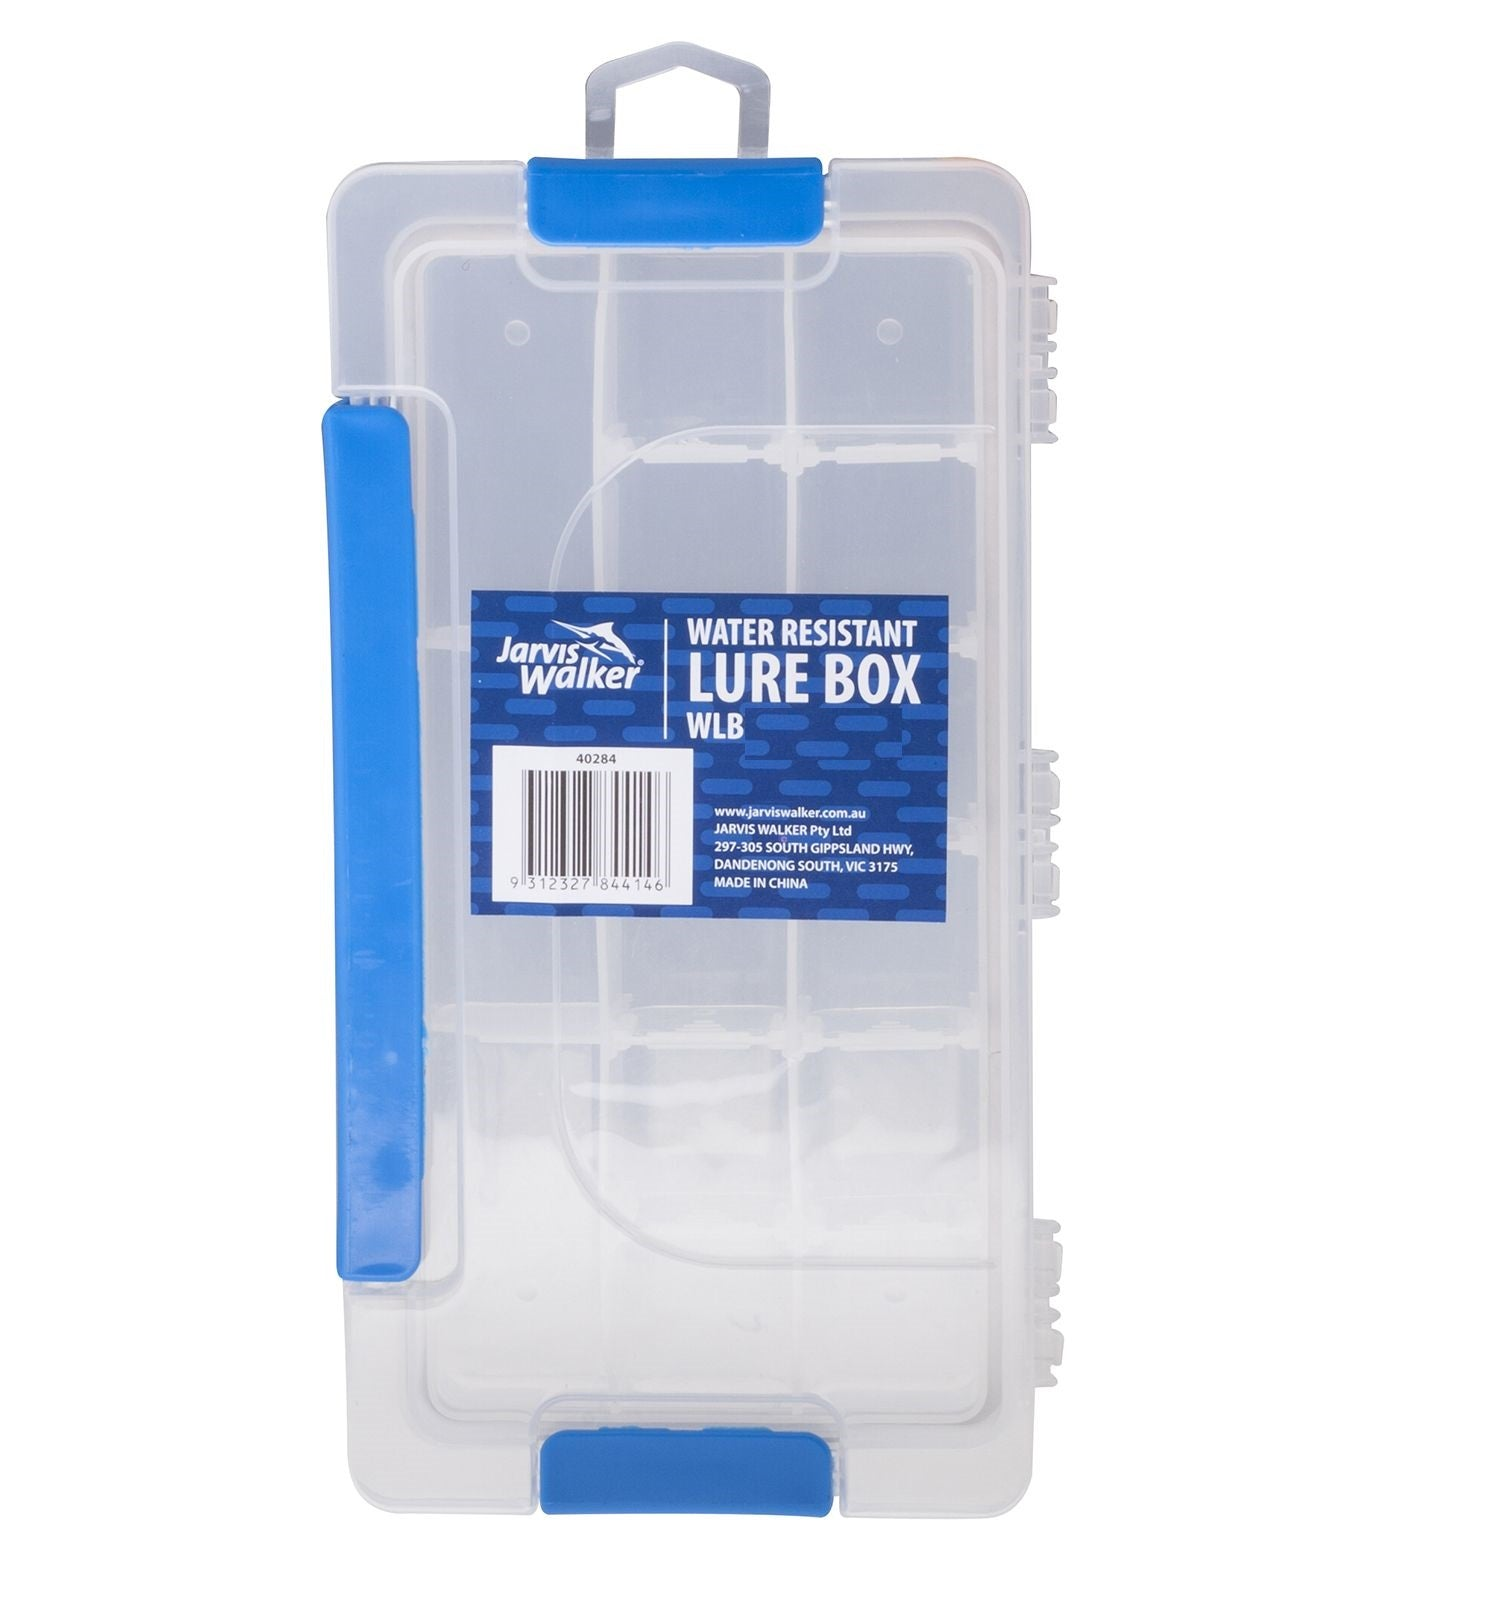 Jarvis Walker Water Resistant Lure Box